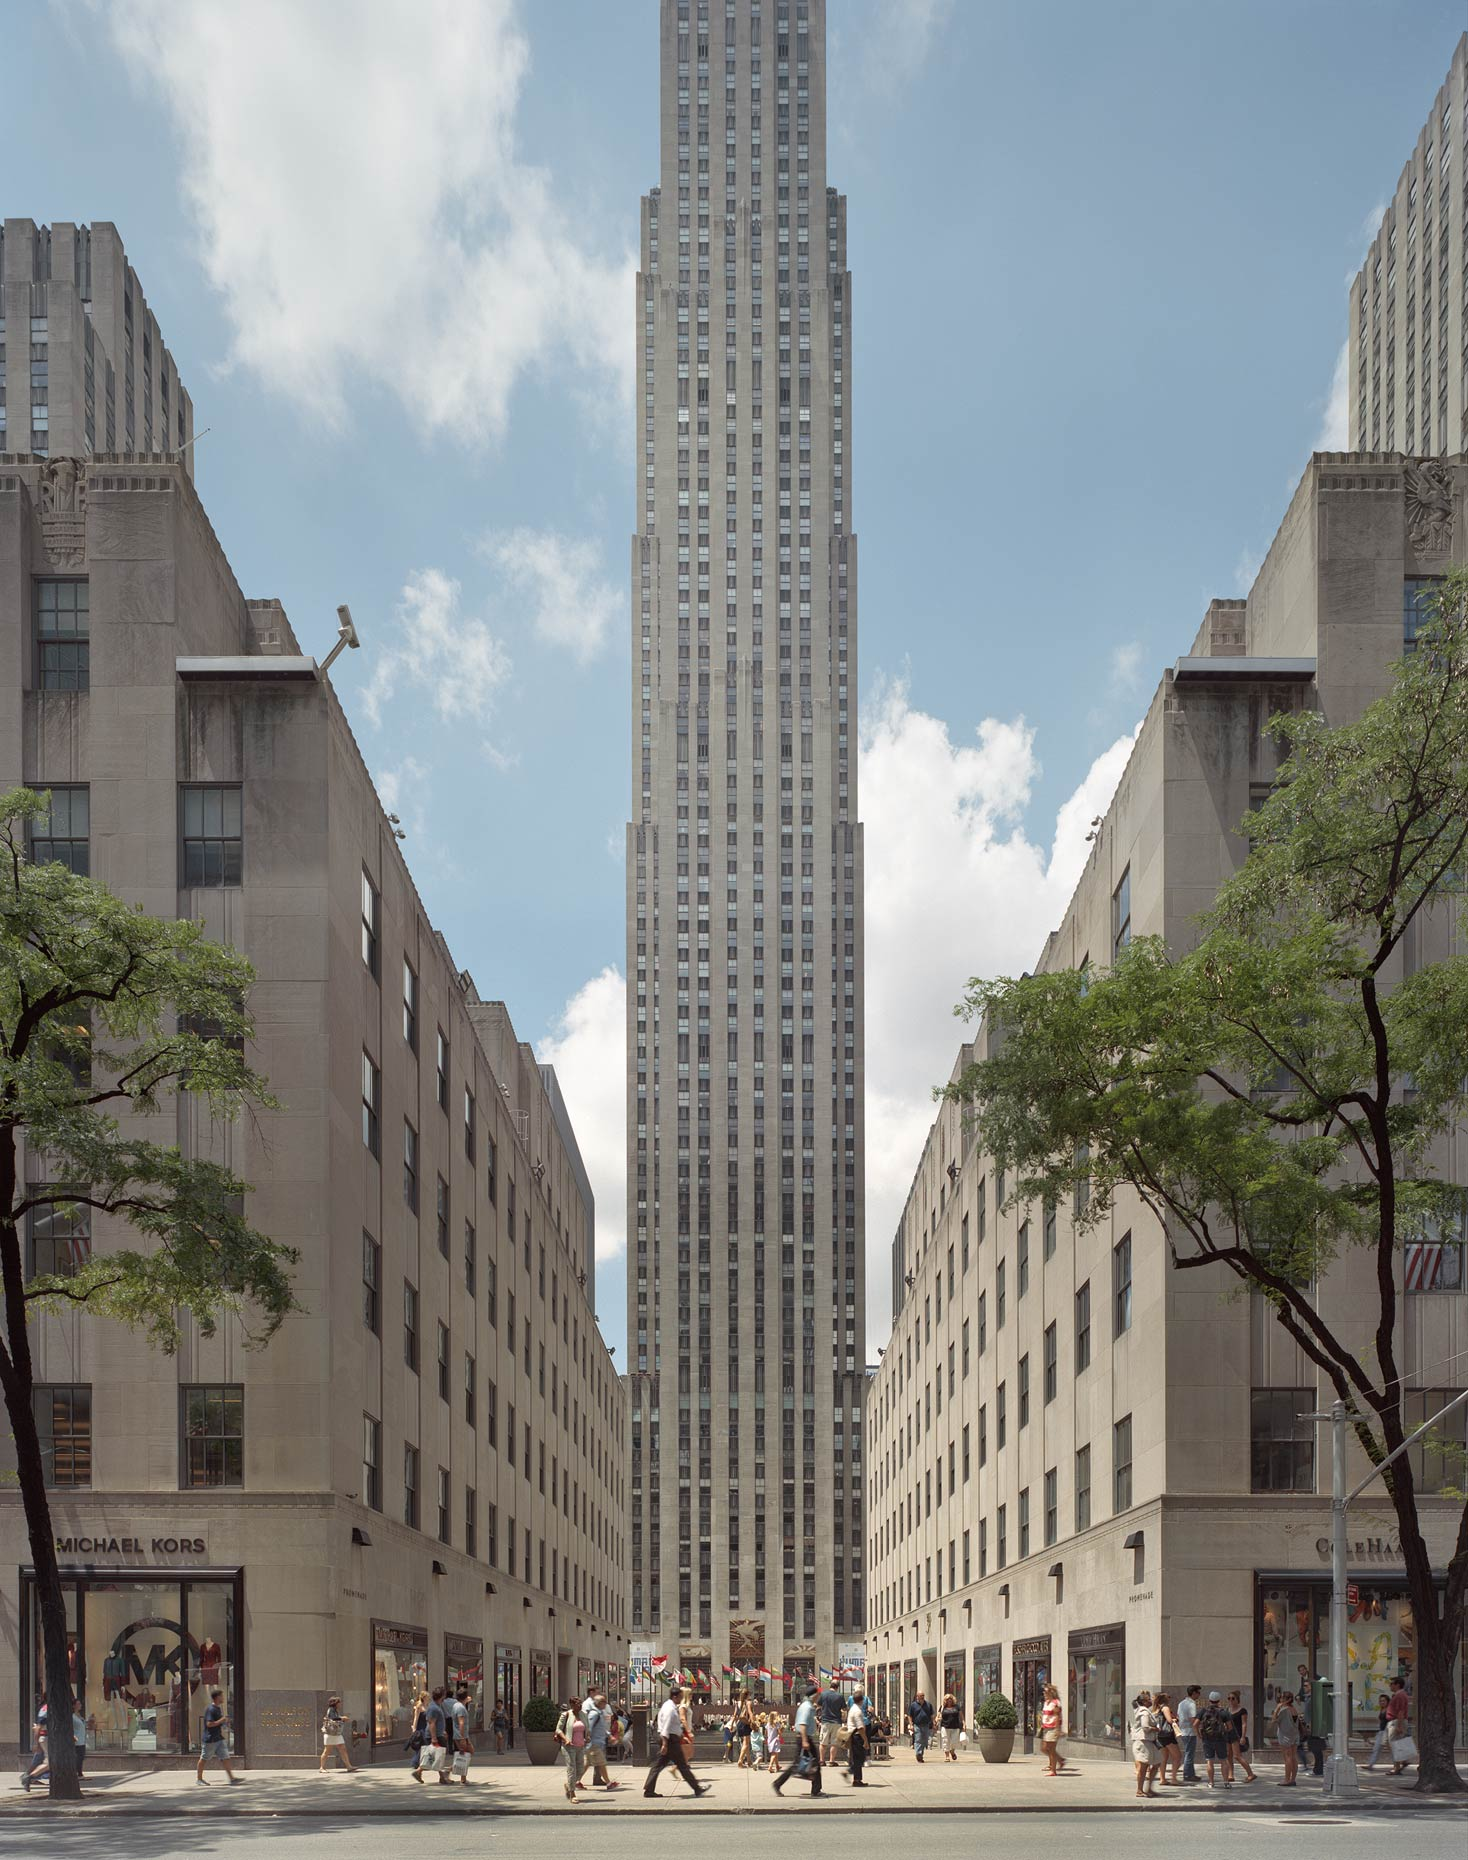 30 Rockefeller Plaza, New York, New York